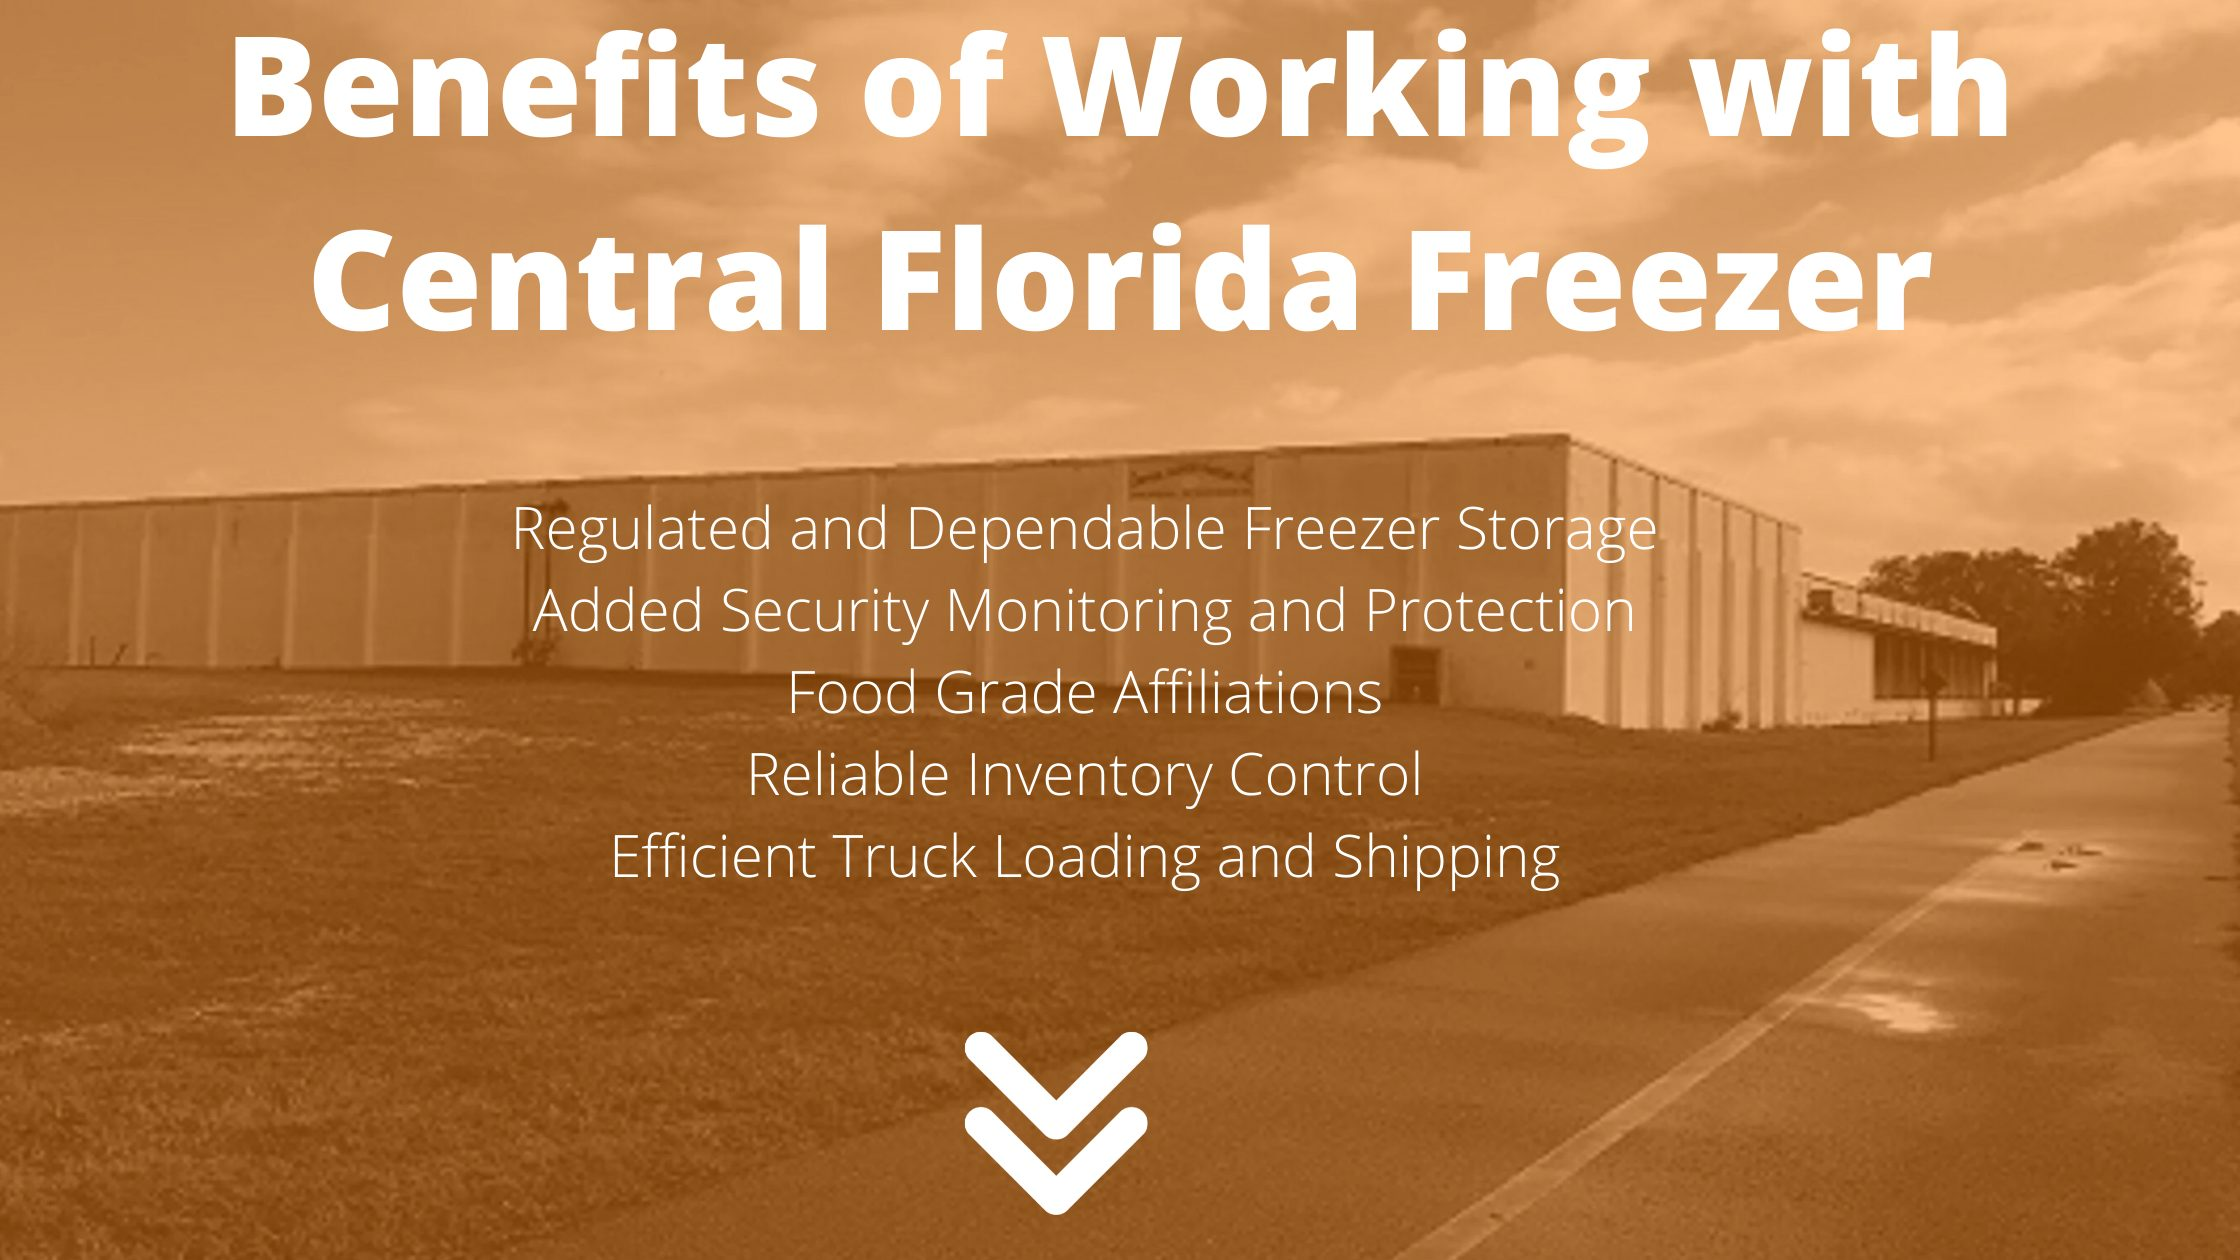 The Benefits Working with Central Florida Freezer- regulated and dependable freezer storage and more.